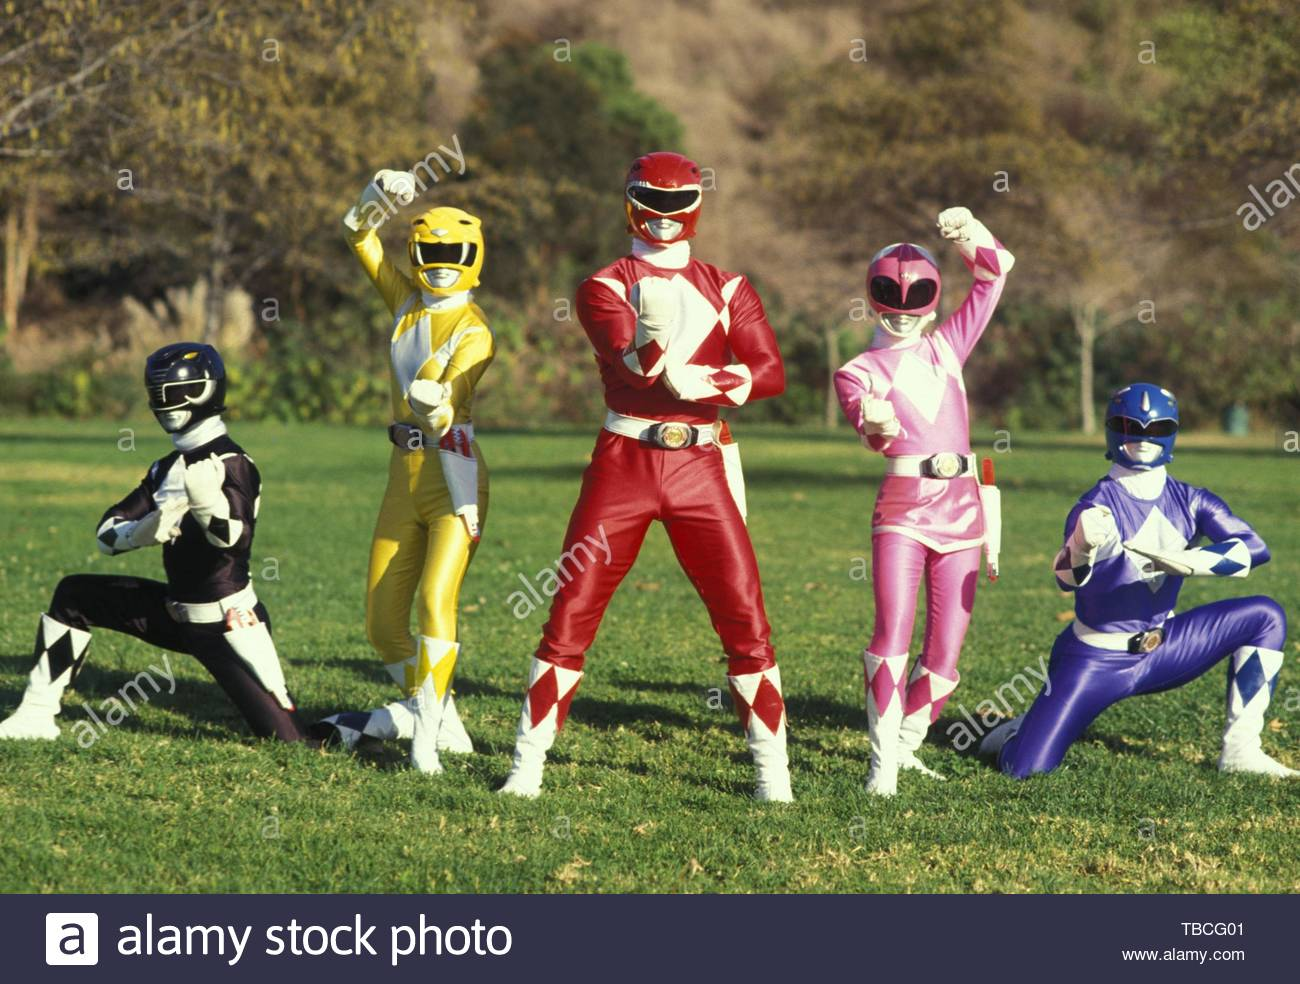 MIGHTY MORPHIN POWER RANGERS (1993). Copyright: Editorial inside use only. This is a publicly distributed handout. Access rights only, no license of copyright provided. Mandatory authorization to Visual Icon (www.visual-icon.com) is required for the reproduction of this image. Credit: TOEI CO. LTD. / Album - Stock Image